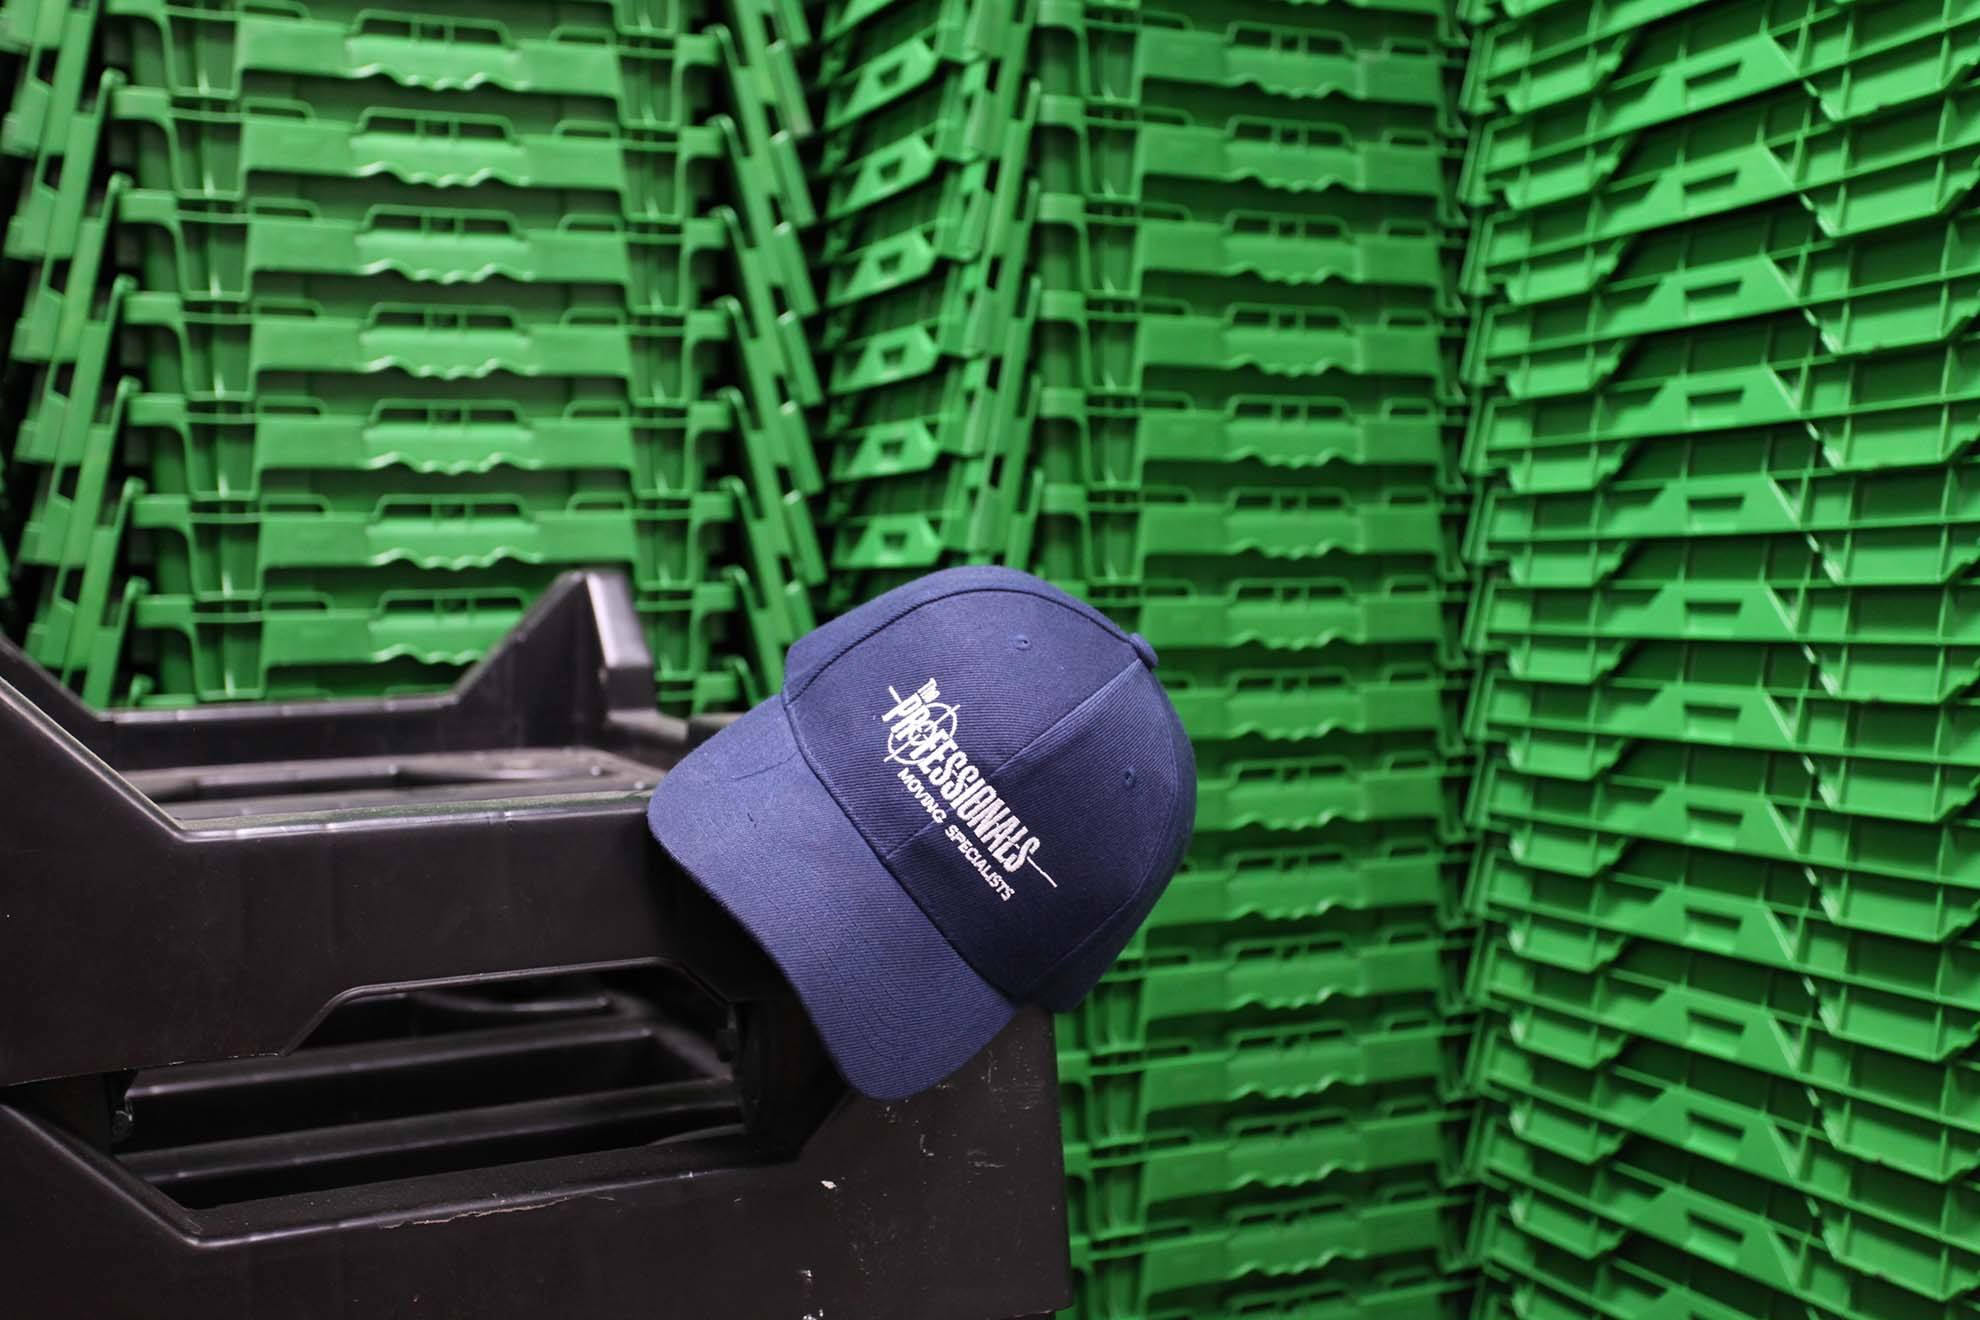 green boxes stacked in front of a moving company hat